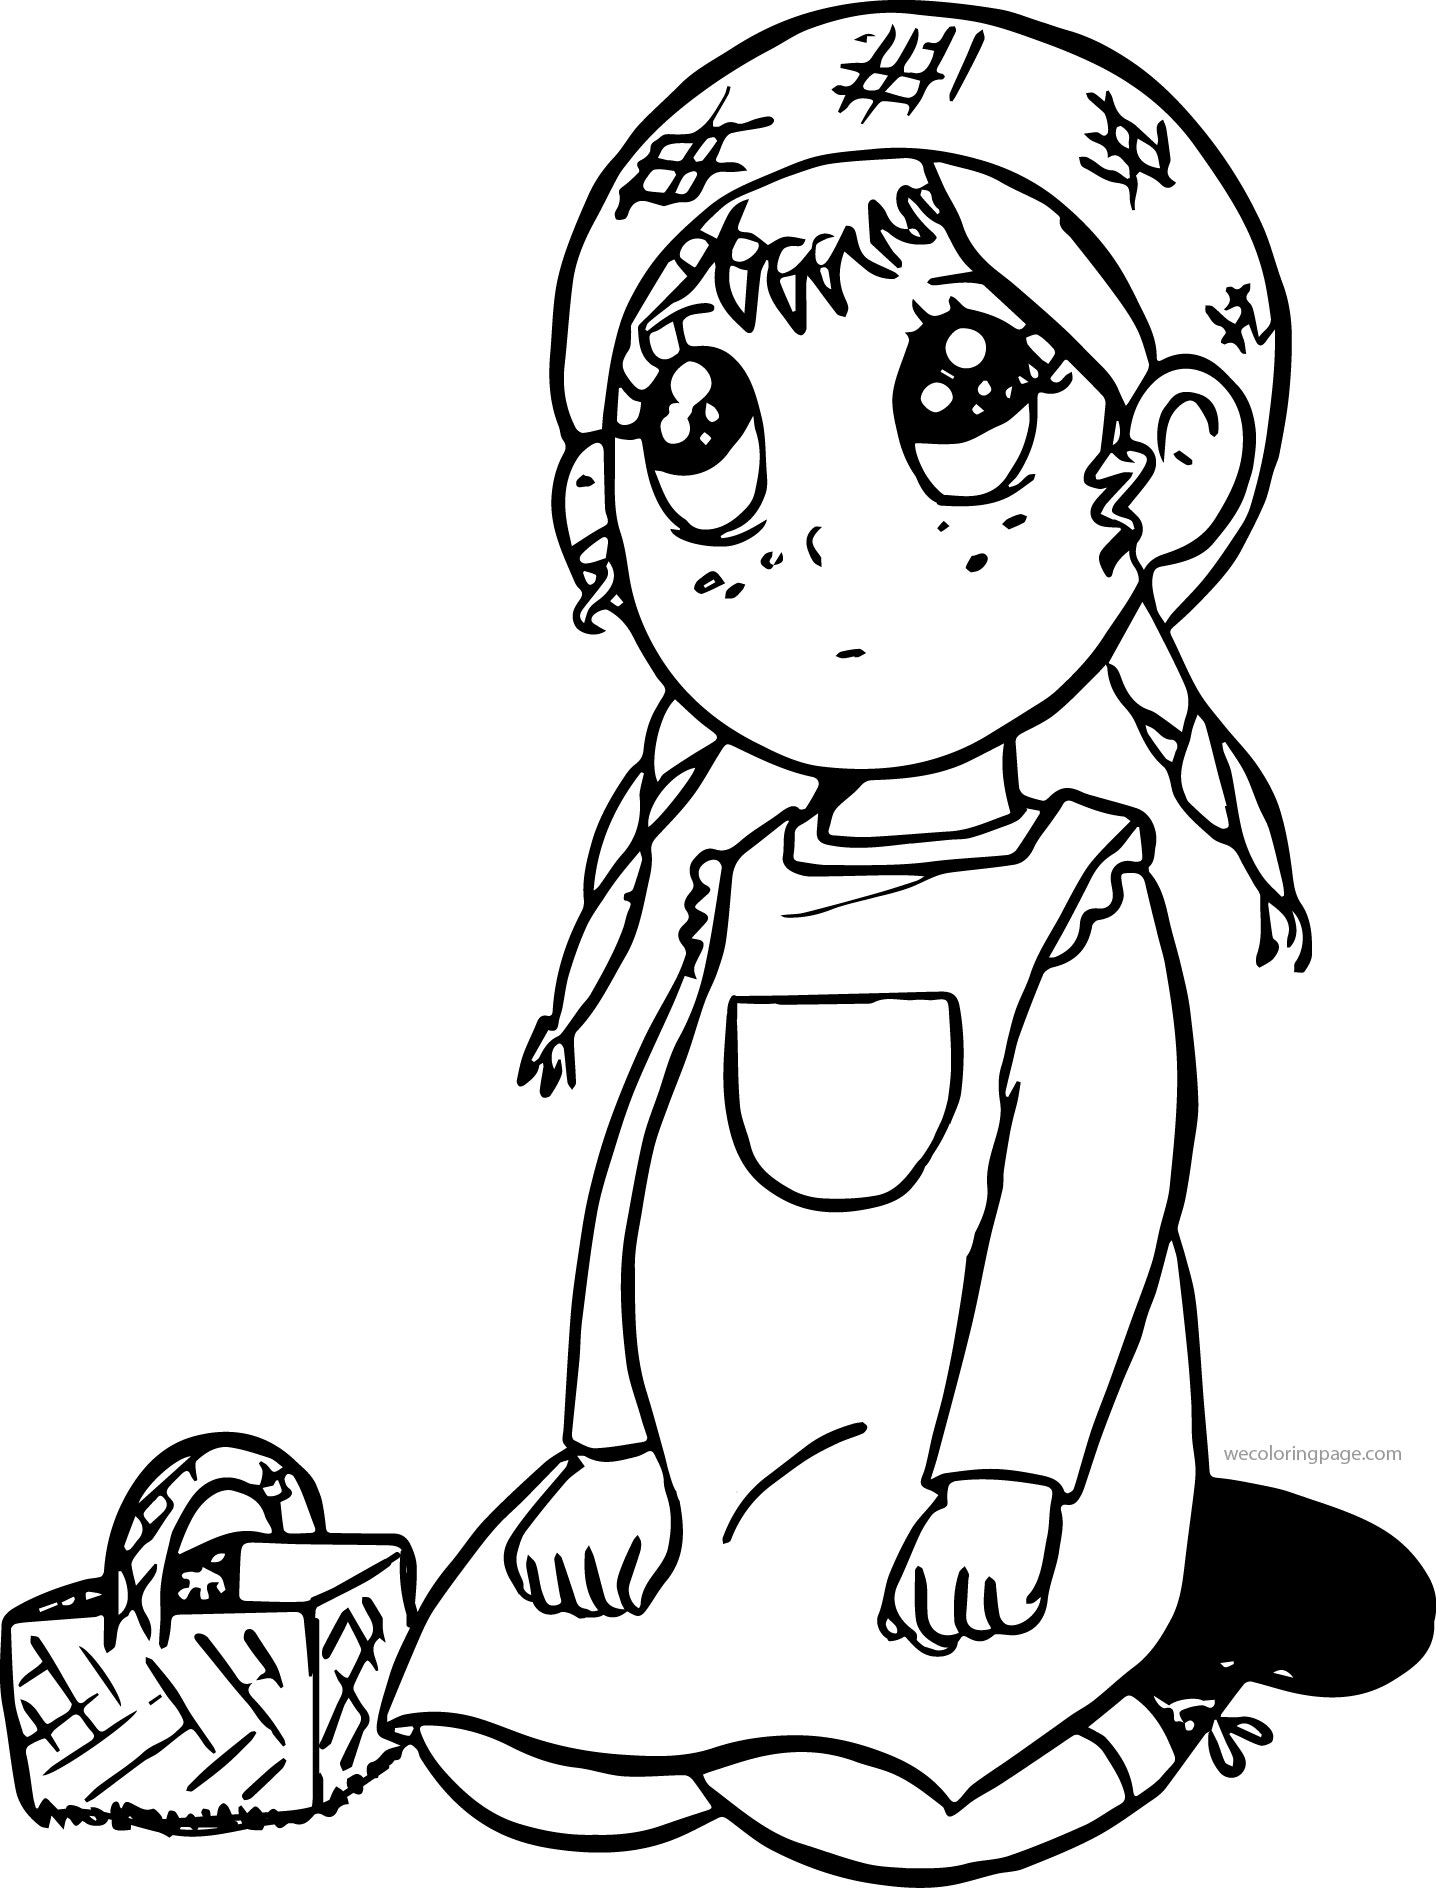 Anne Chan Of Green Gables Cartoon Coloring Page | Wecoloringpage.com